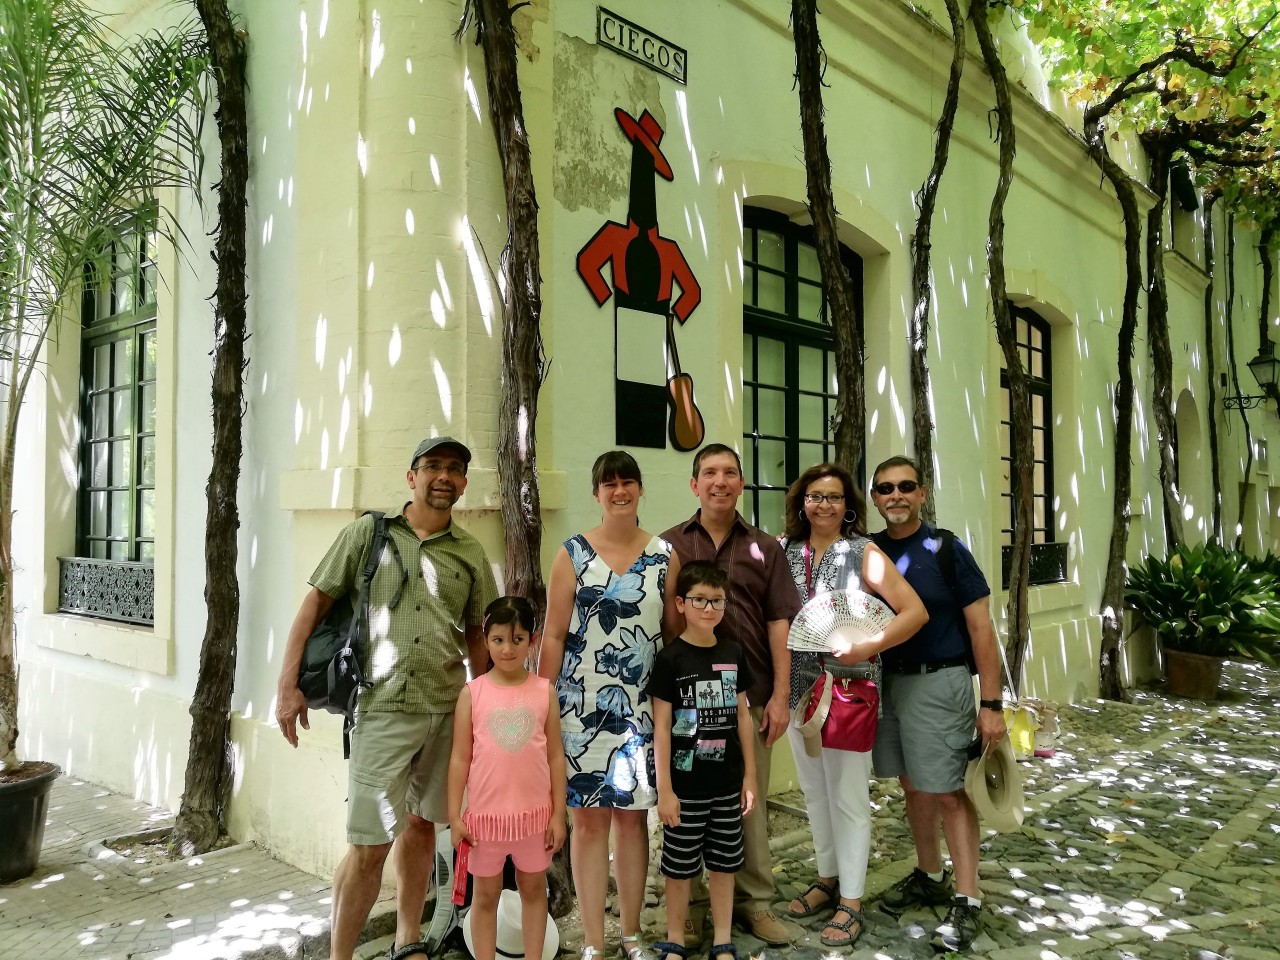 Nos visitan Sherry Explorers de San Antonio, Texas / We received a visit from San Antonio, Texas´ Sherry Explorers